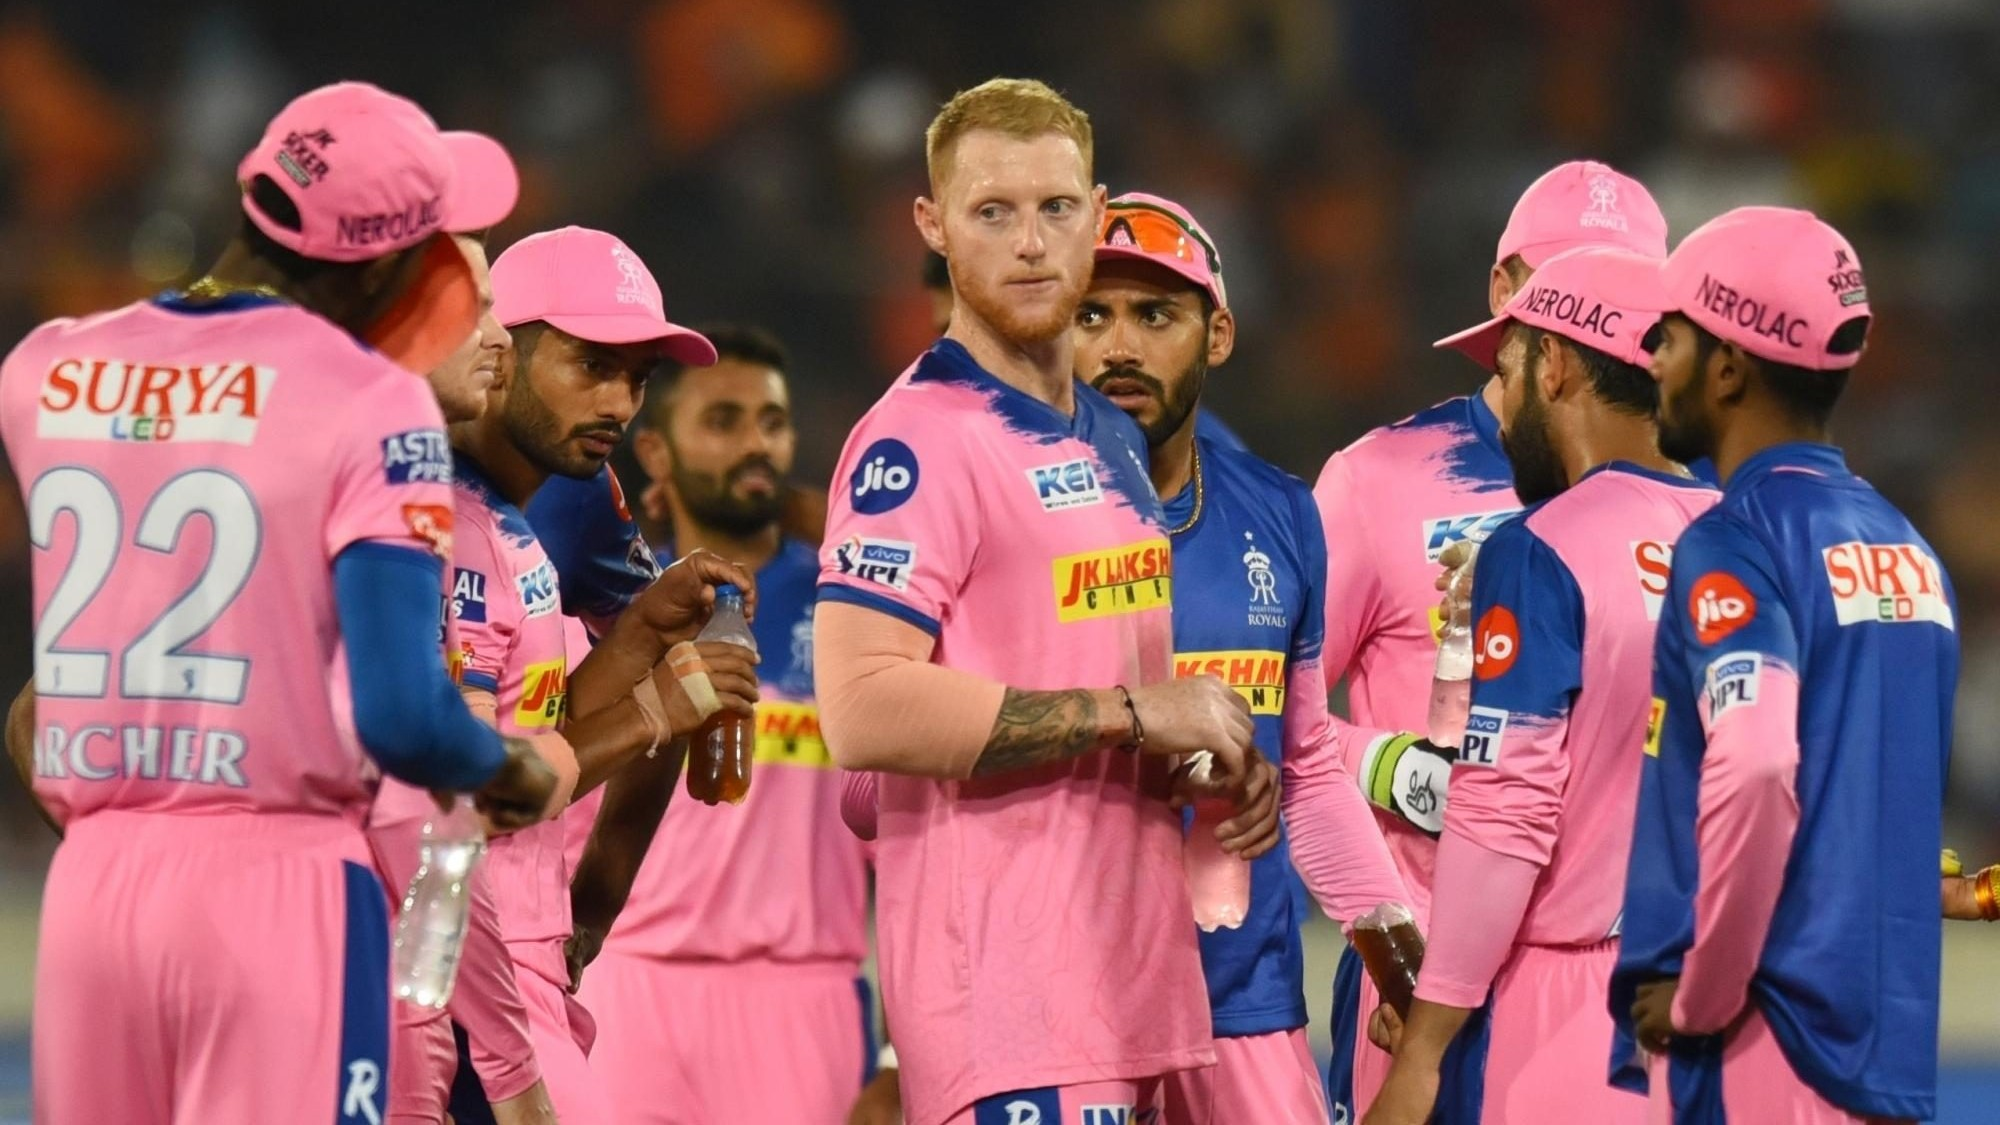 IPL 2020: Rajasthan Royals – Complete List of players traded, released and retained